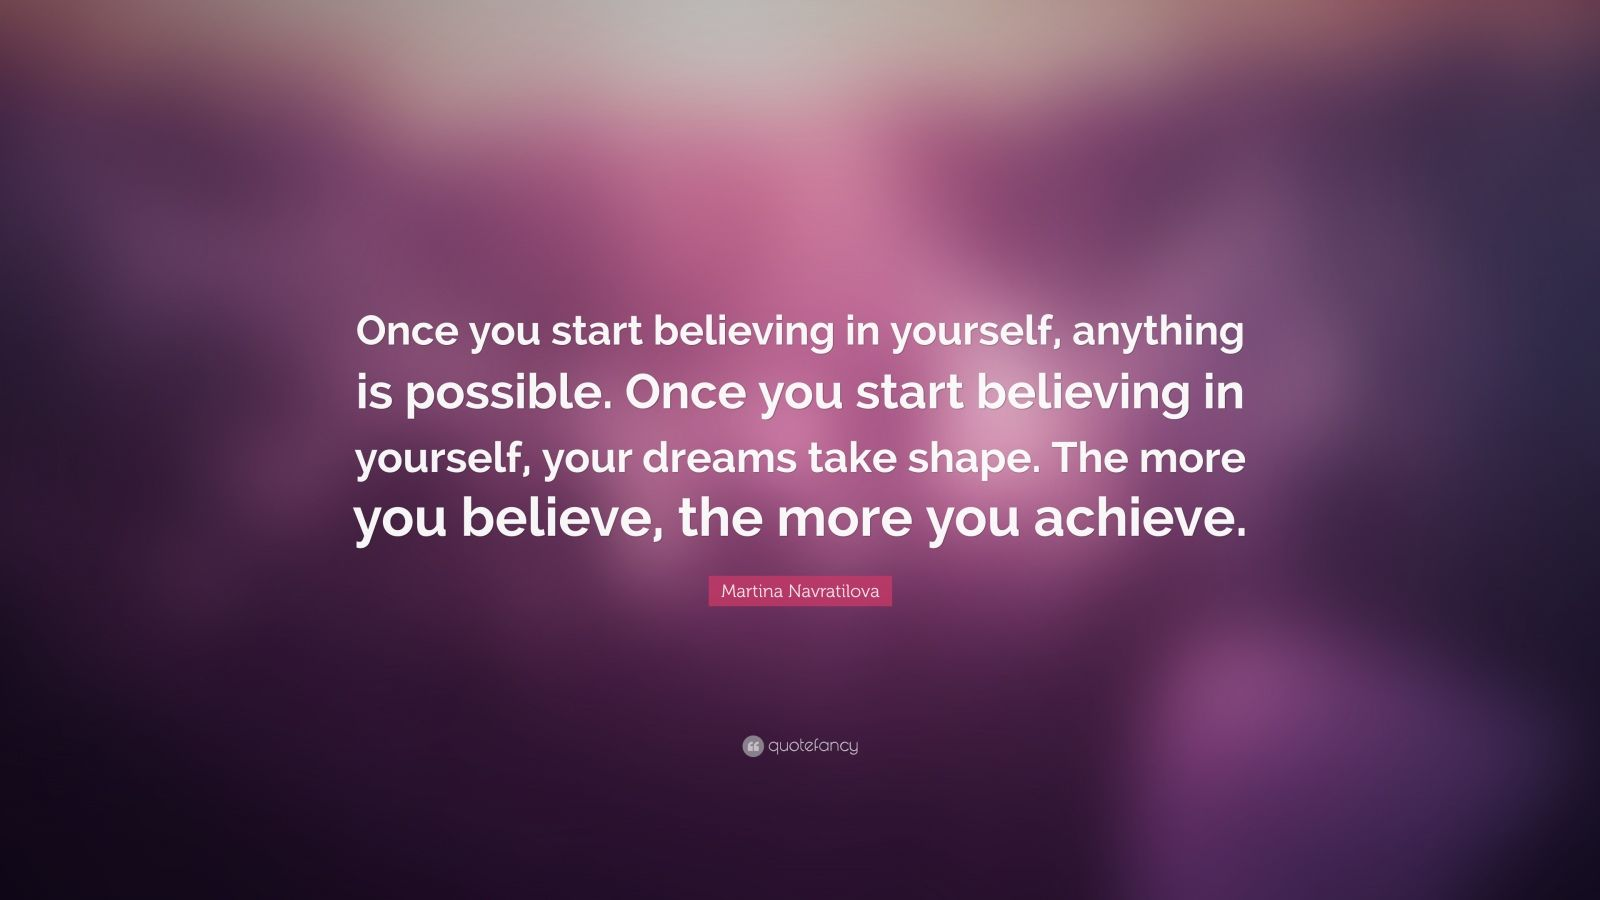 "Martina Navratilova Quote: ""Once you start believing in yourself, anything is possible. Once you start believing in yourself, your dreams take shape. The more you believe, the more you achieve."""